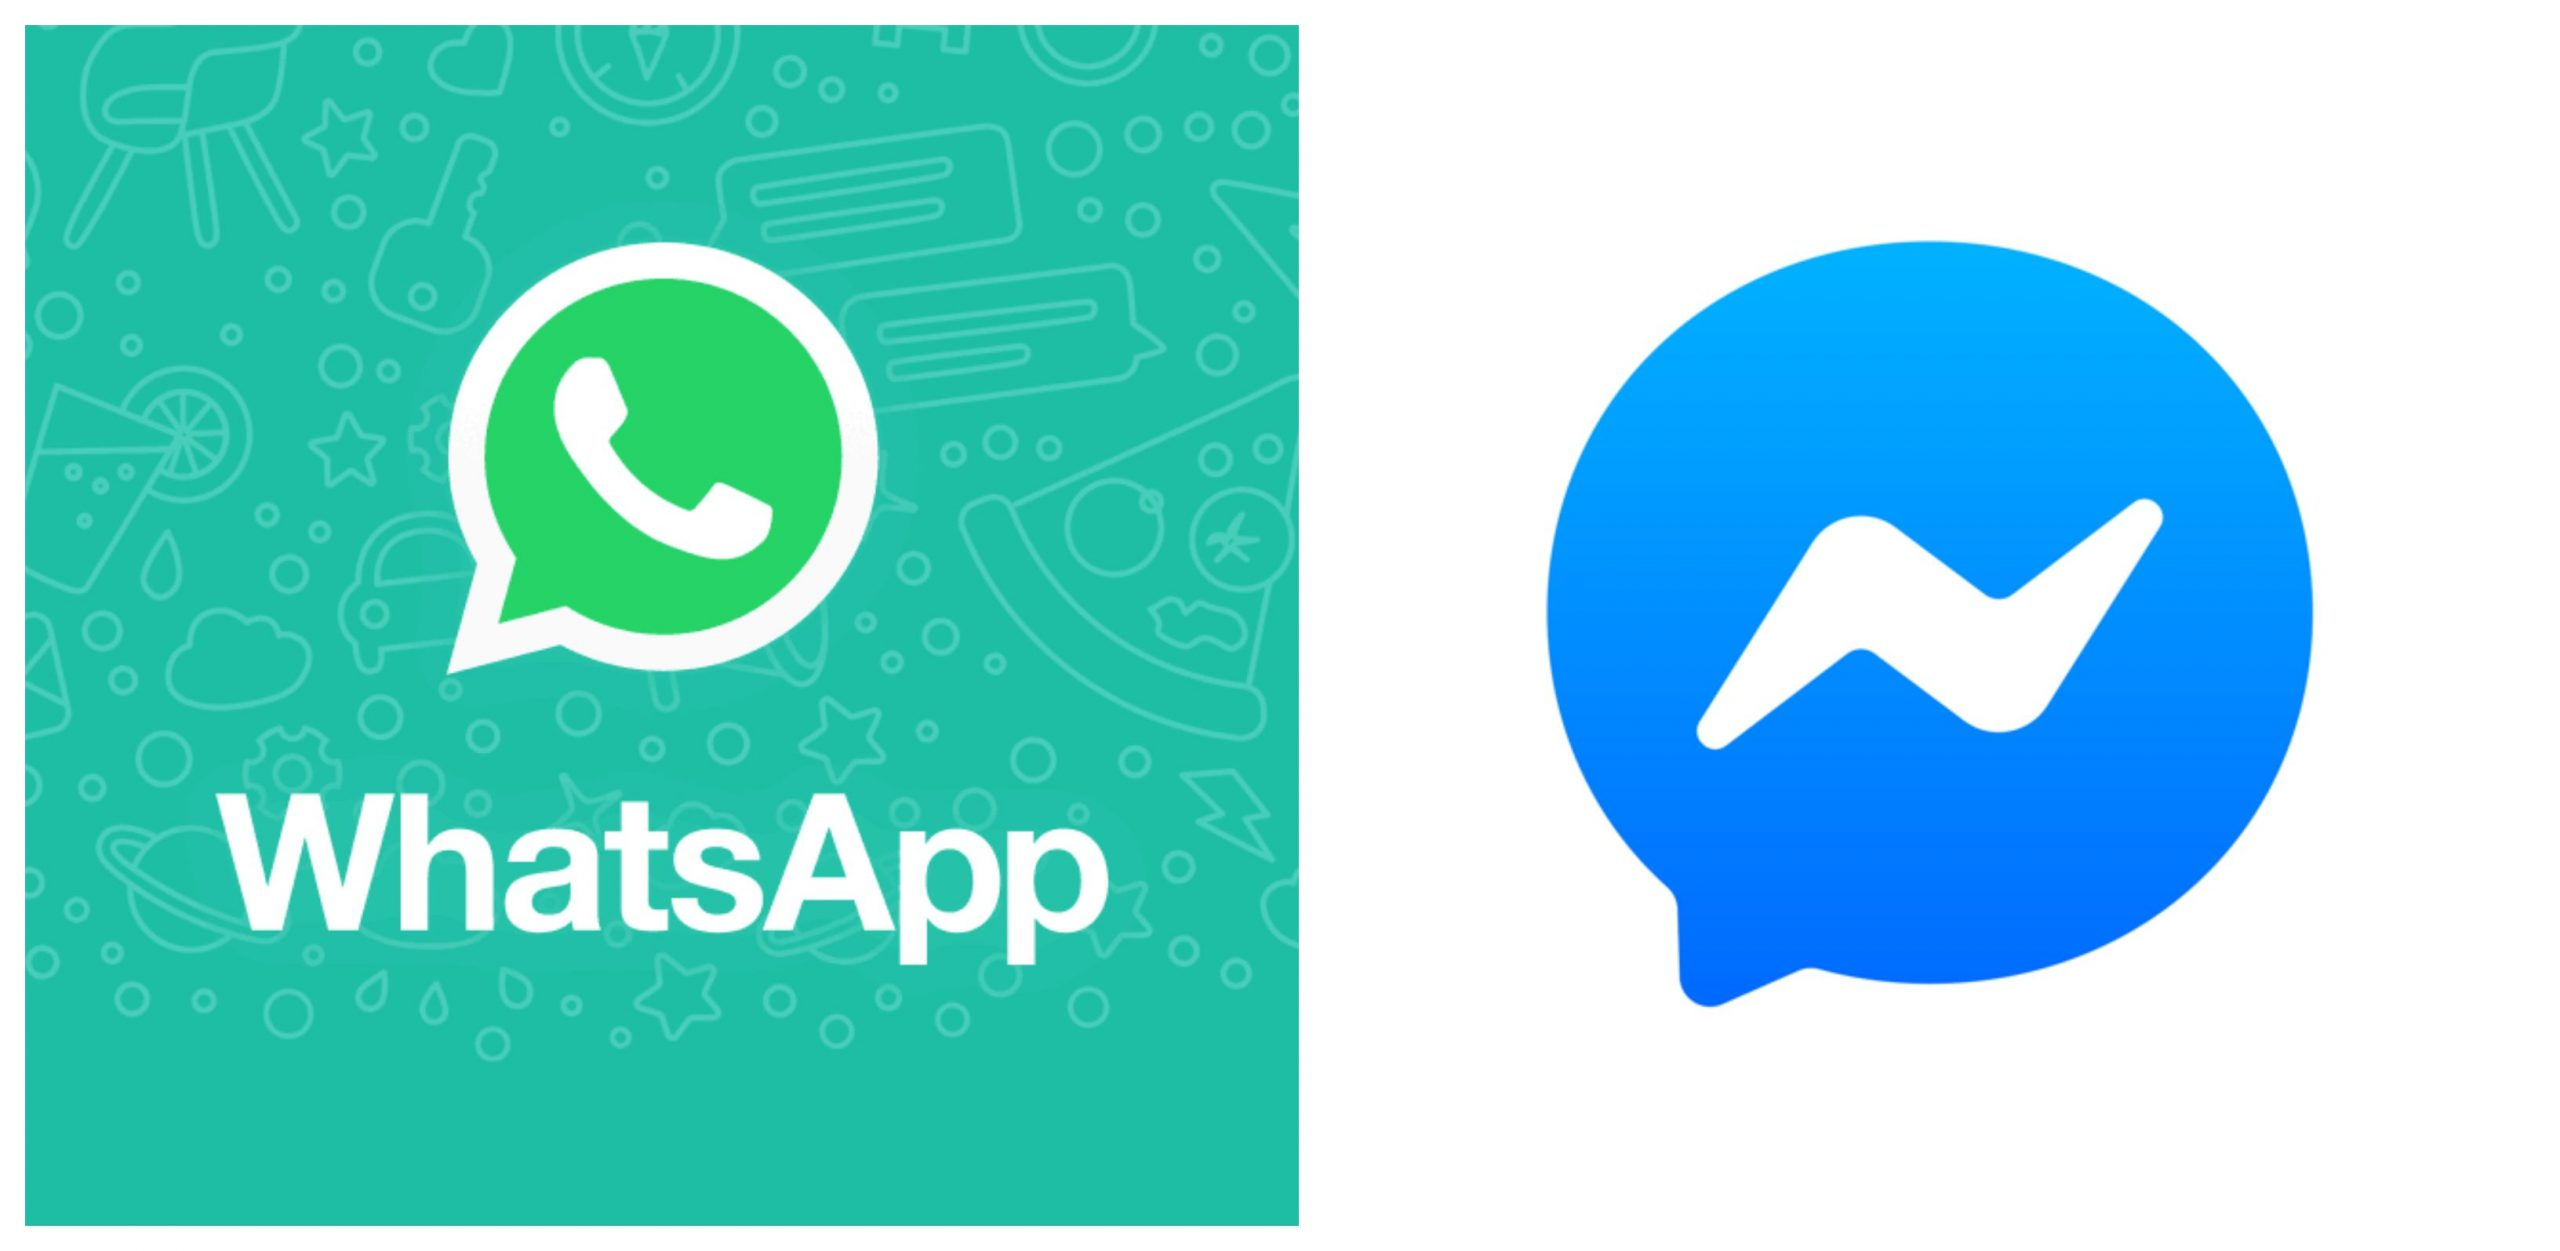 whatsapp and messenger